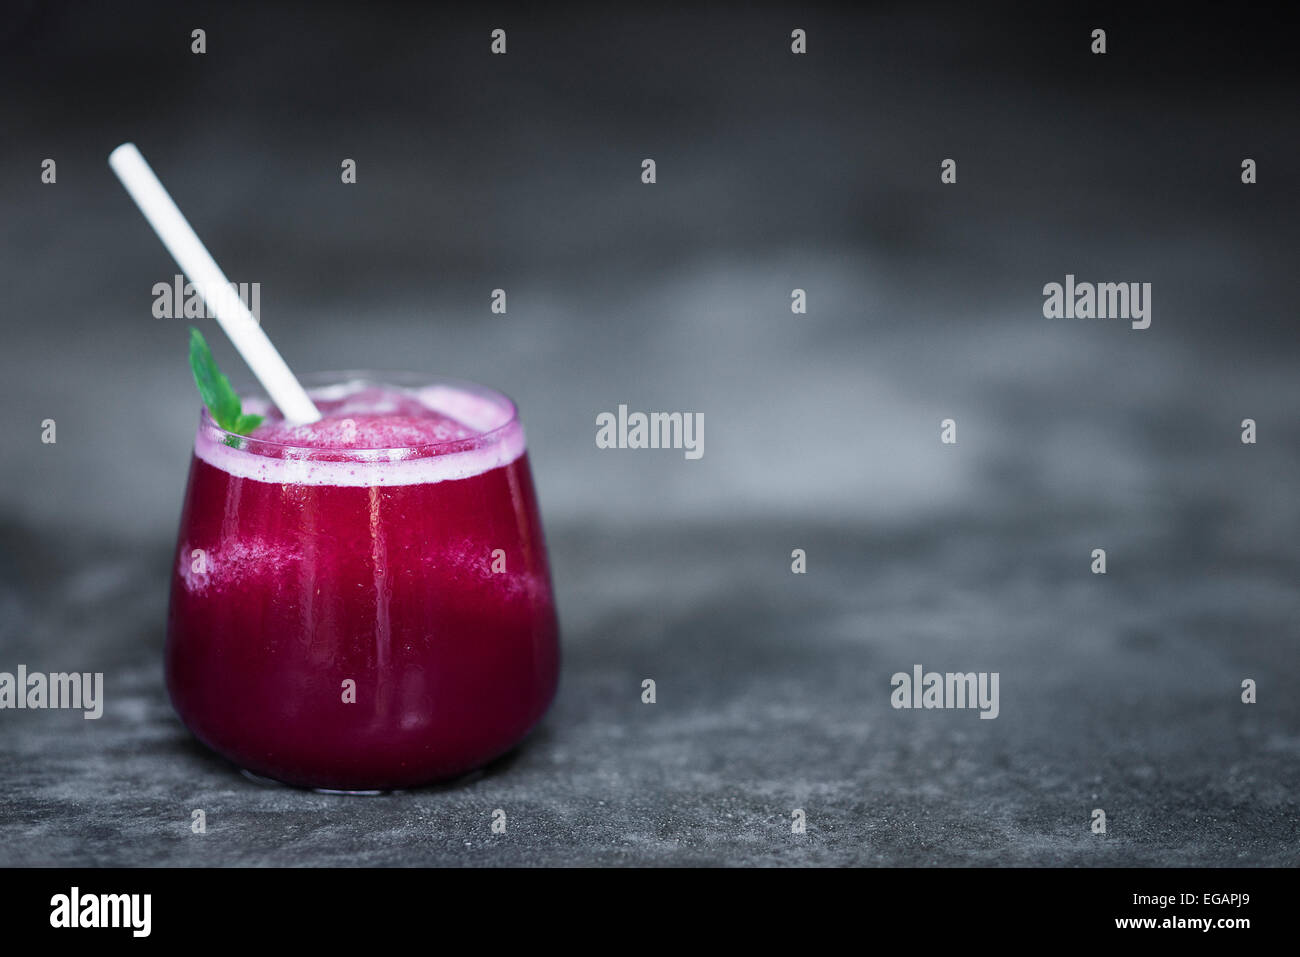 fresh beetroot juice in glass - Stock Image